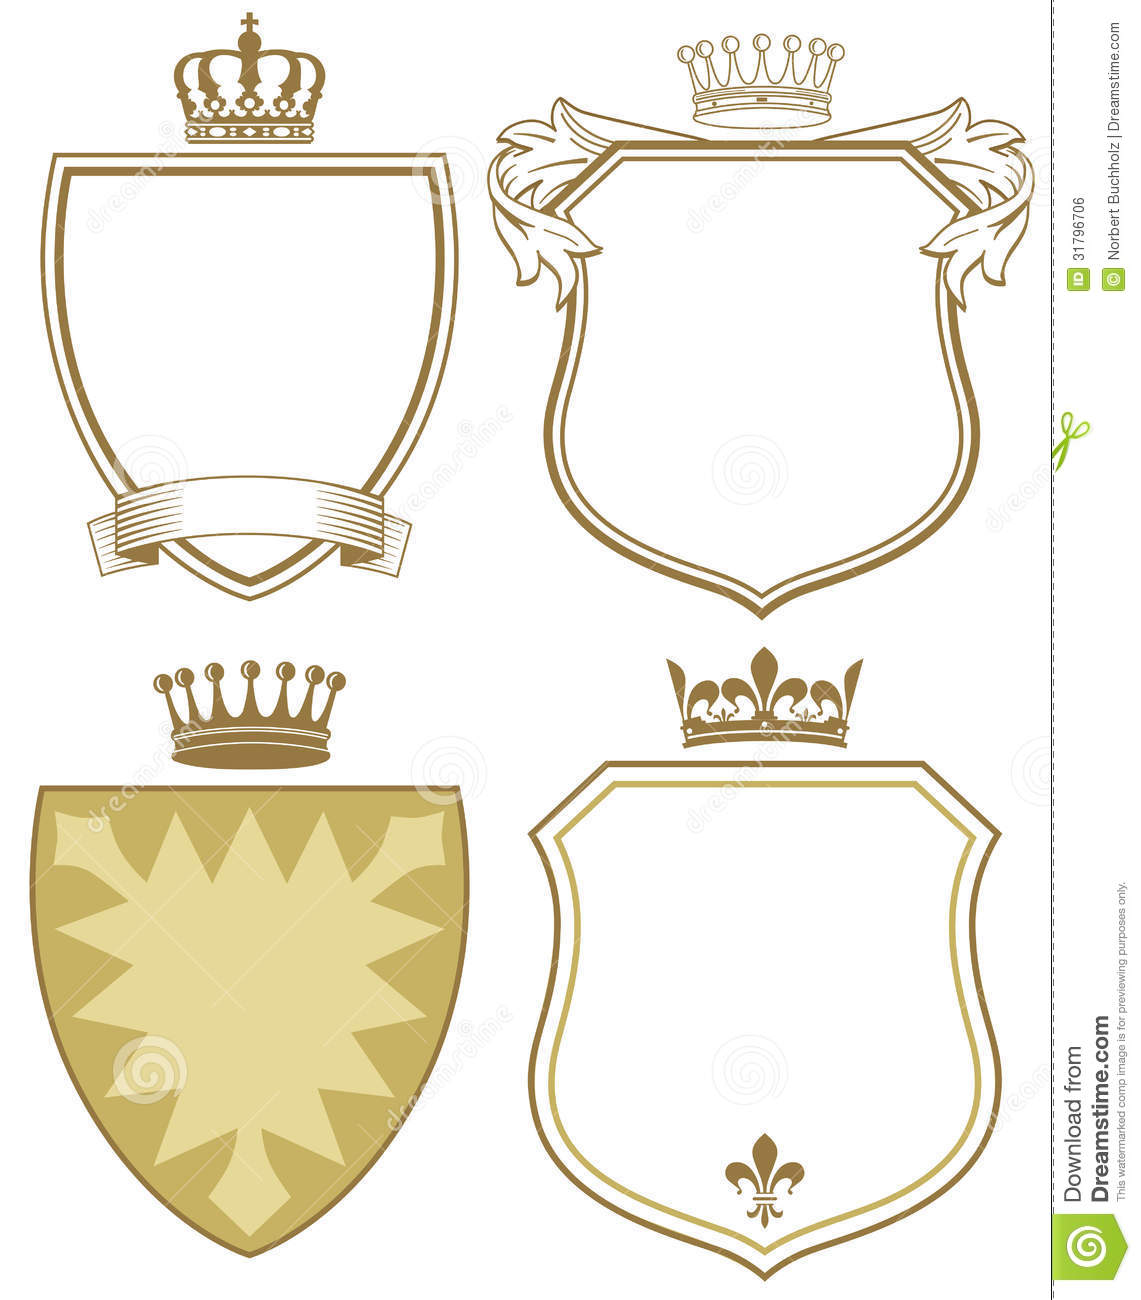 Black And White Coat Of Arms Template Coat of arms or shields